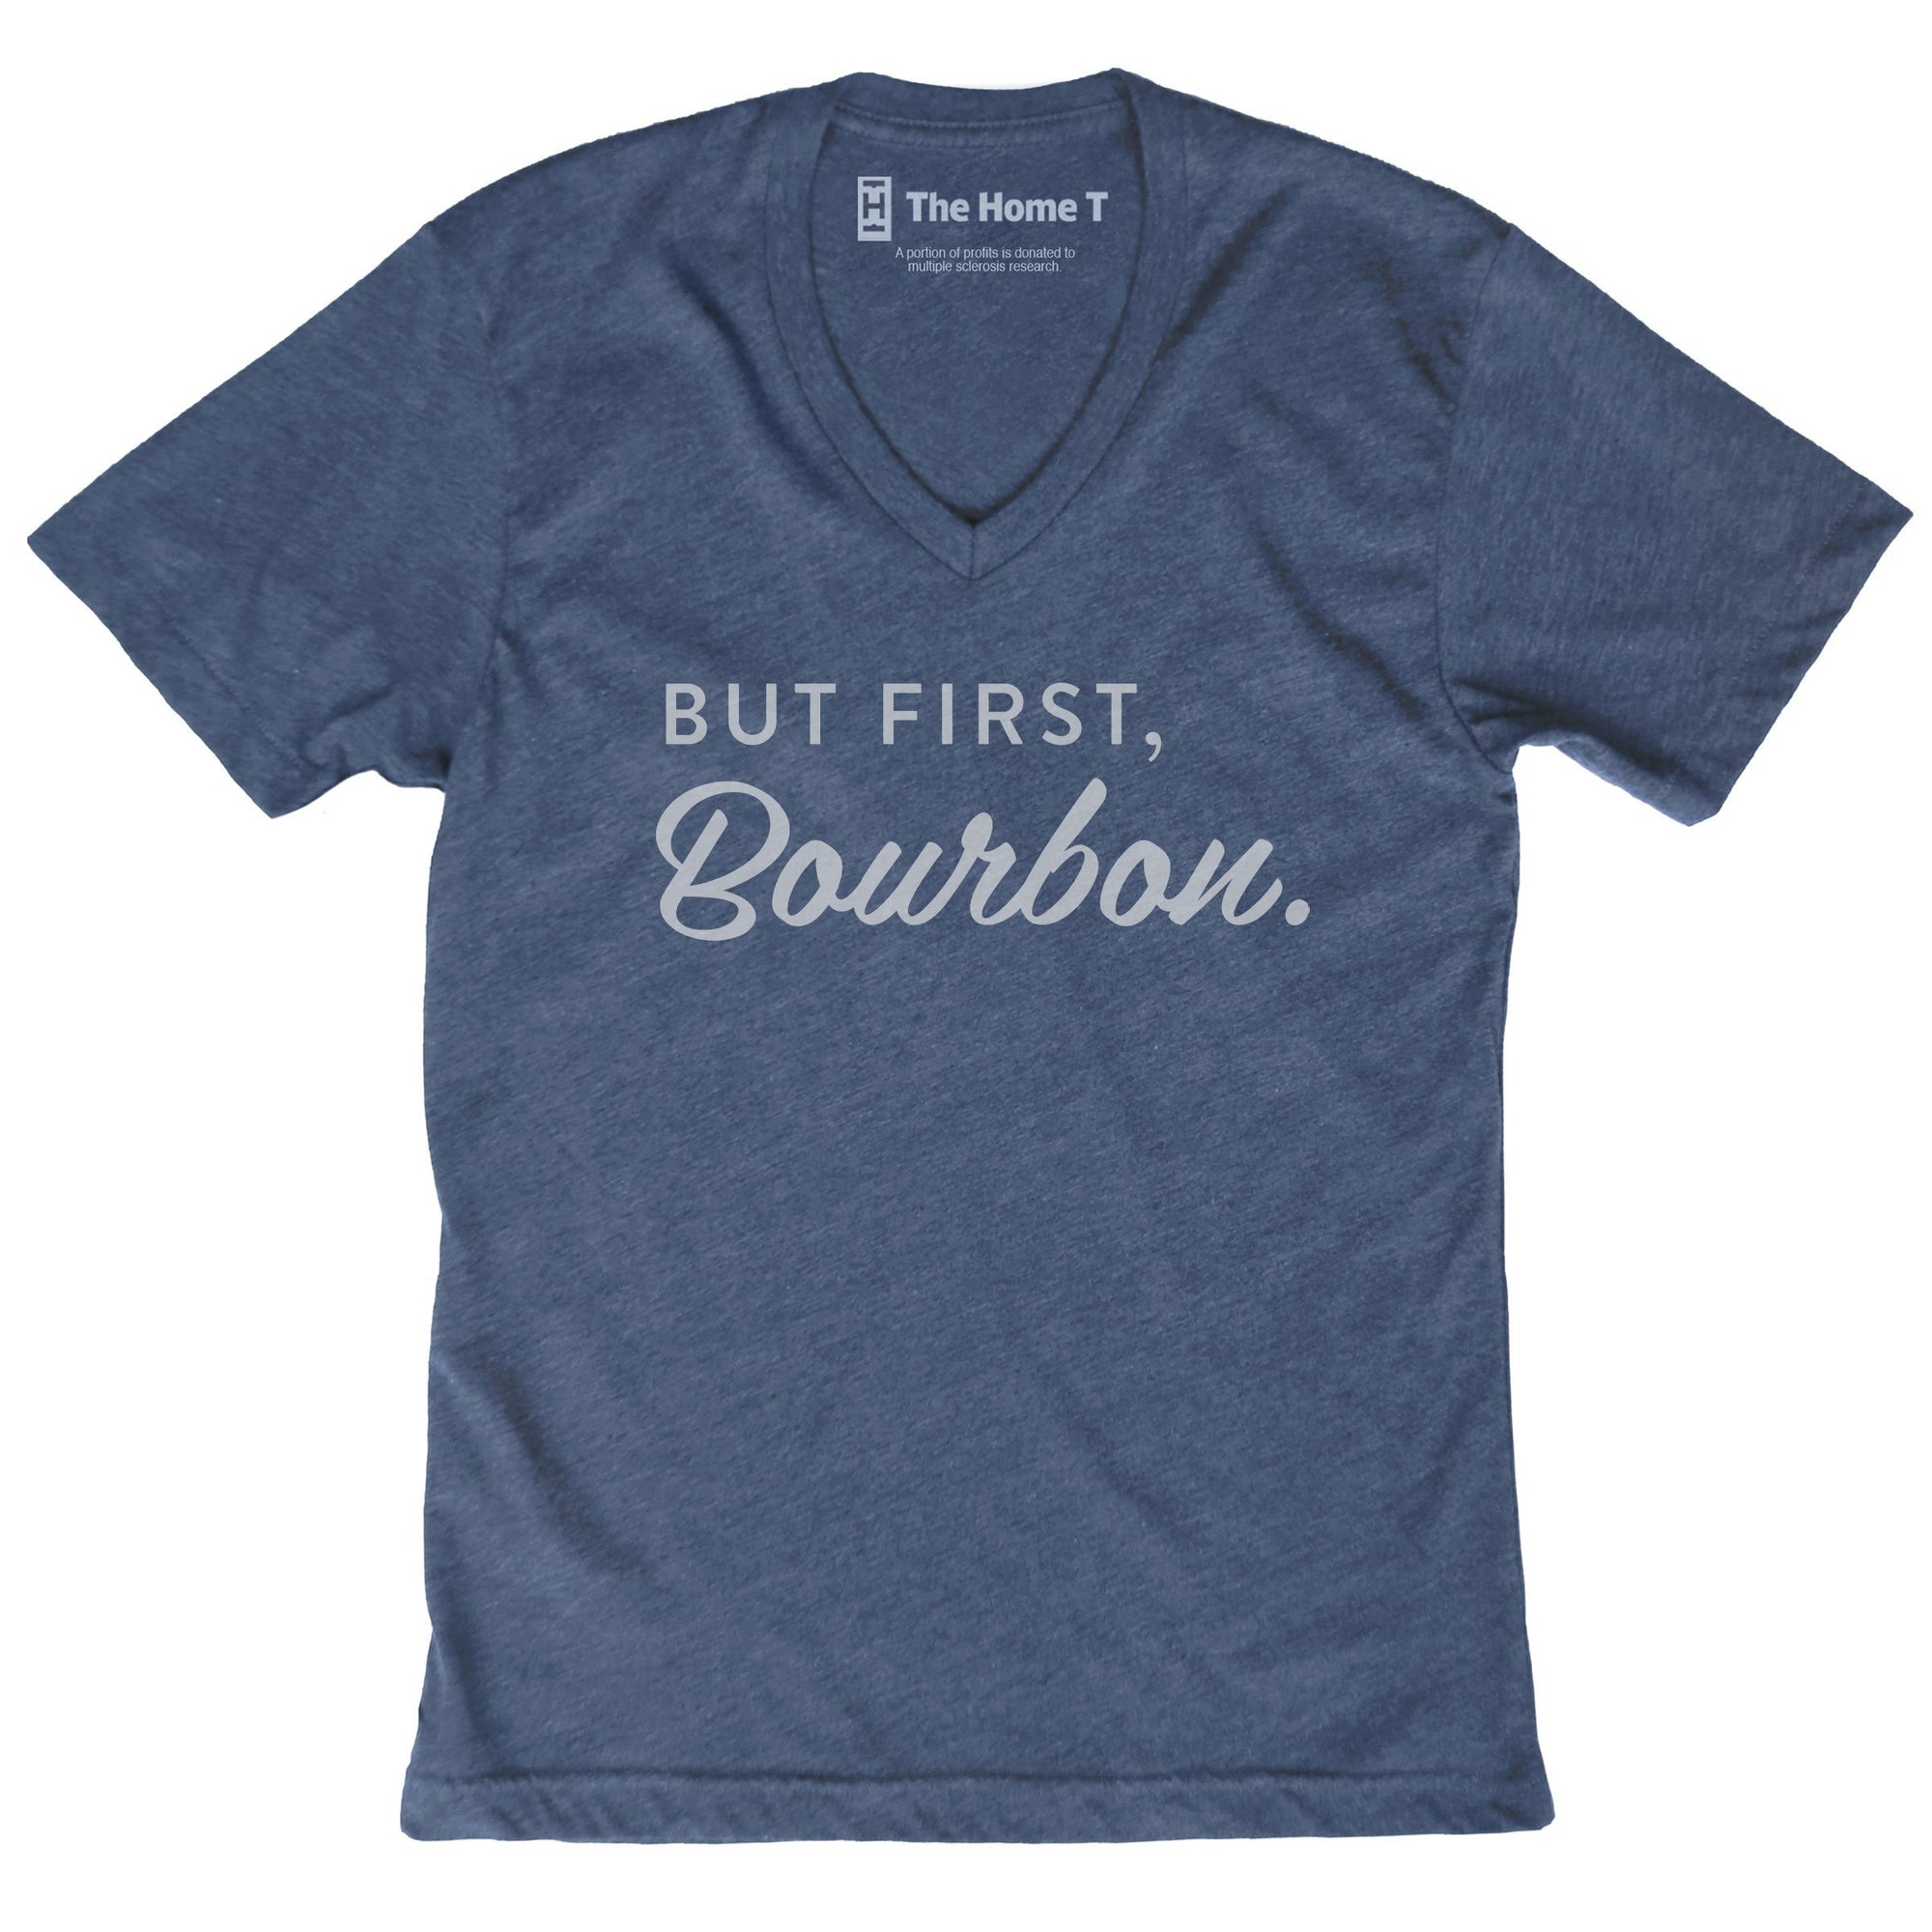 But First, Bourbon Shirts The Home T XS Athletic Grey Crew Neck